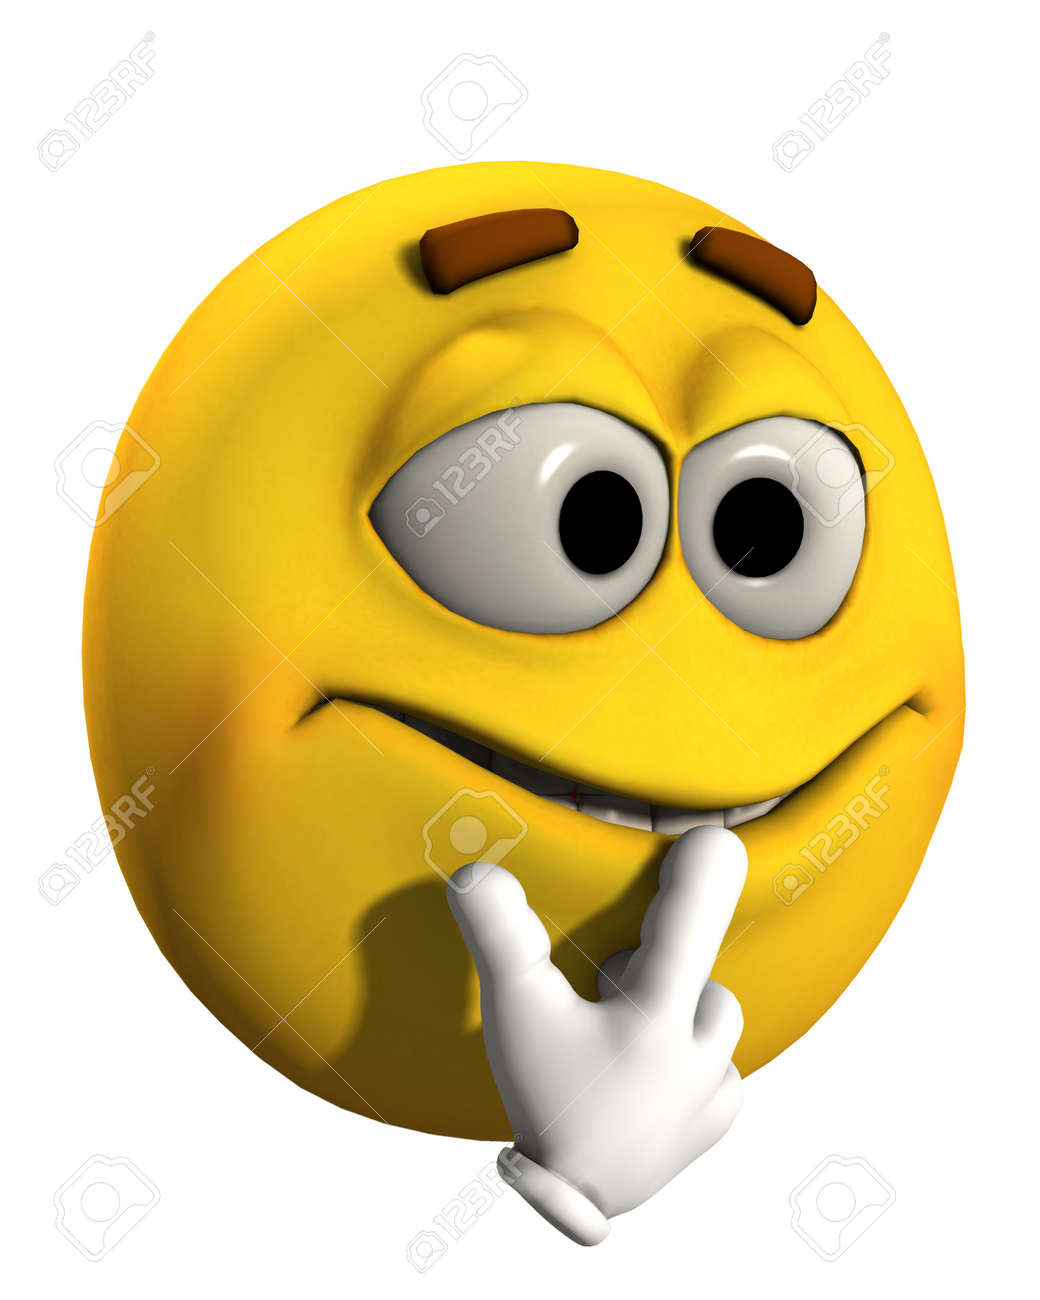 a conceptual image of a very puzzled and confused cartoon face rh 123rf com confused cartoon face image Funny Confused Cartoon